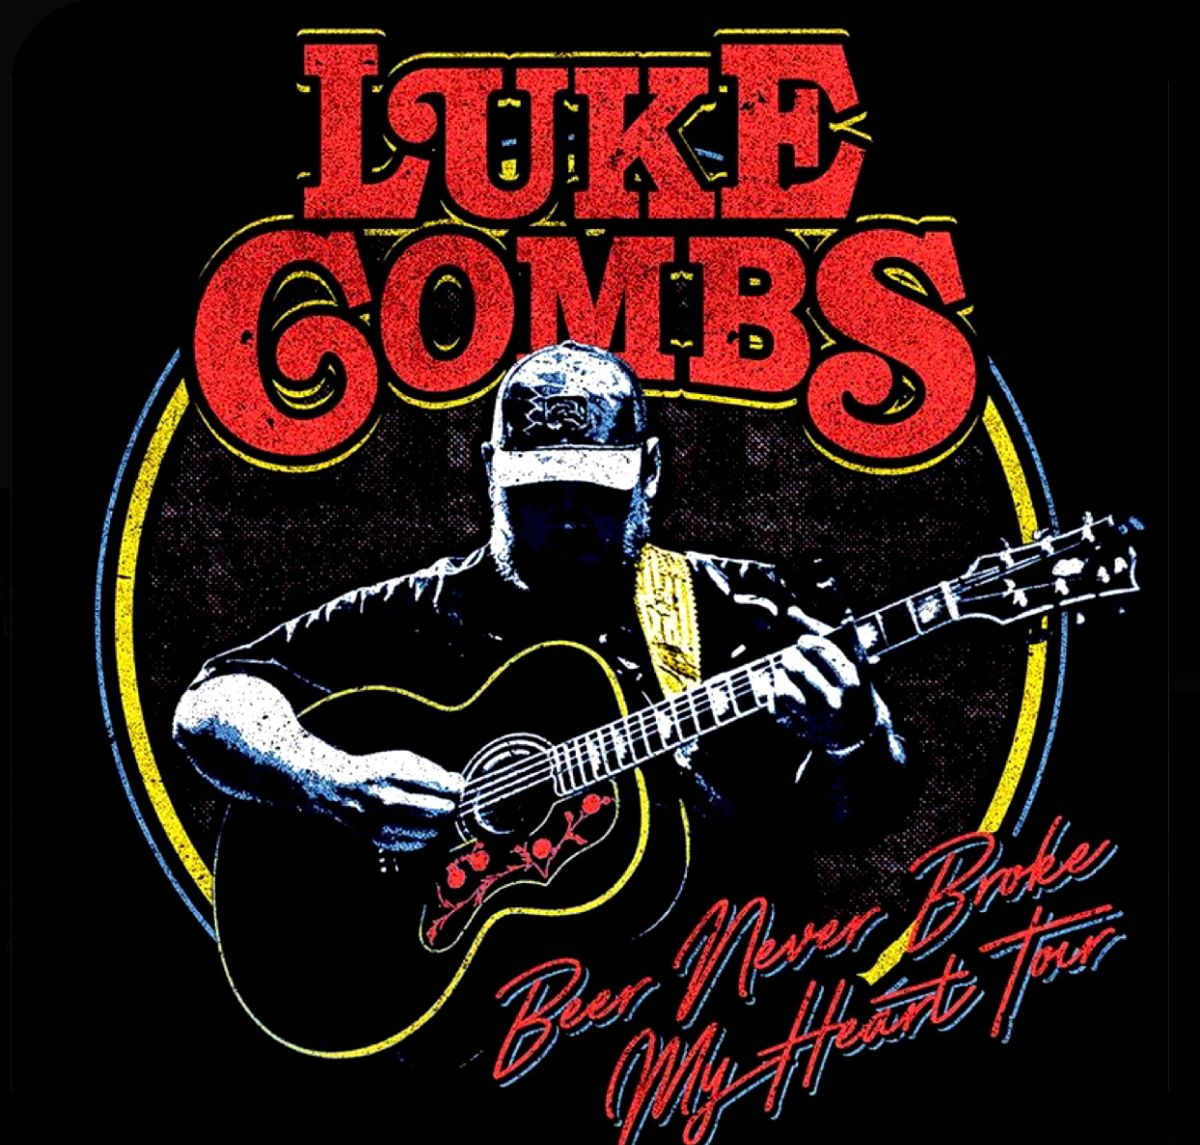 Luke Combs In 2020 Art Collage Wall Picture Collage Wall Western Wall Art